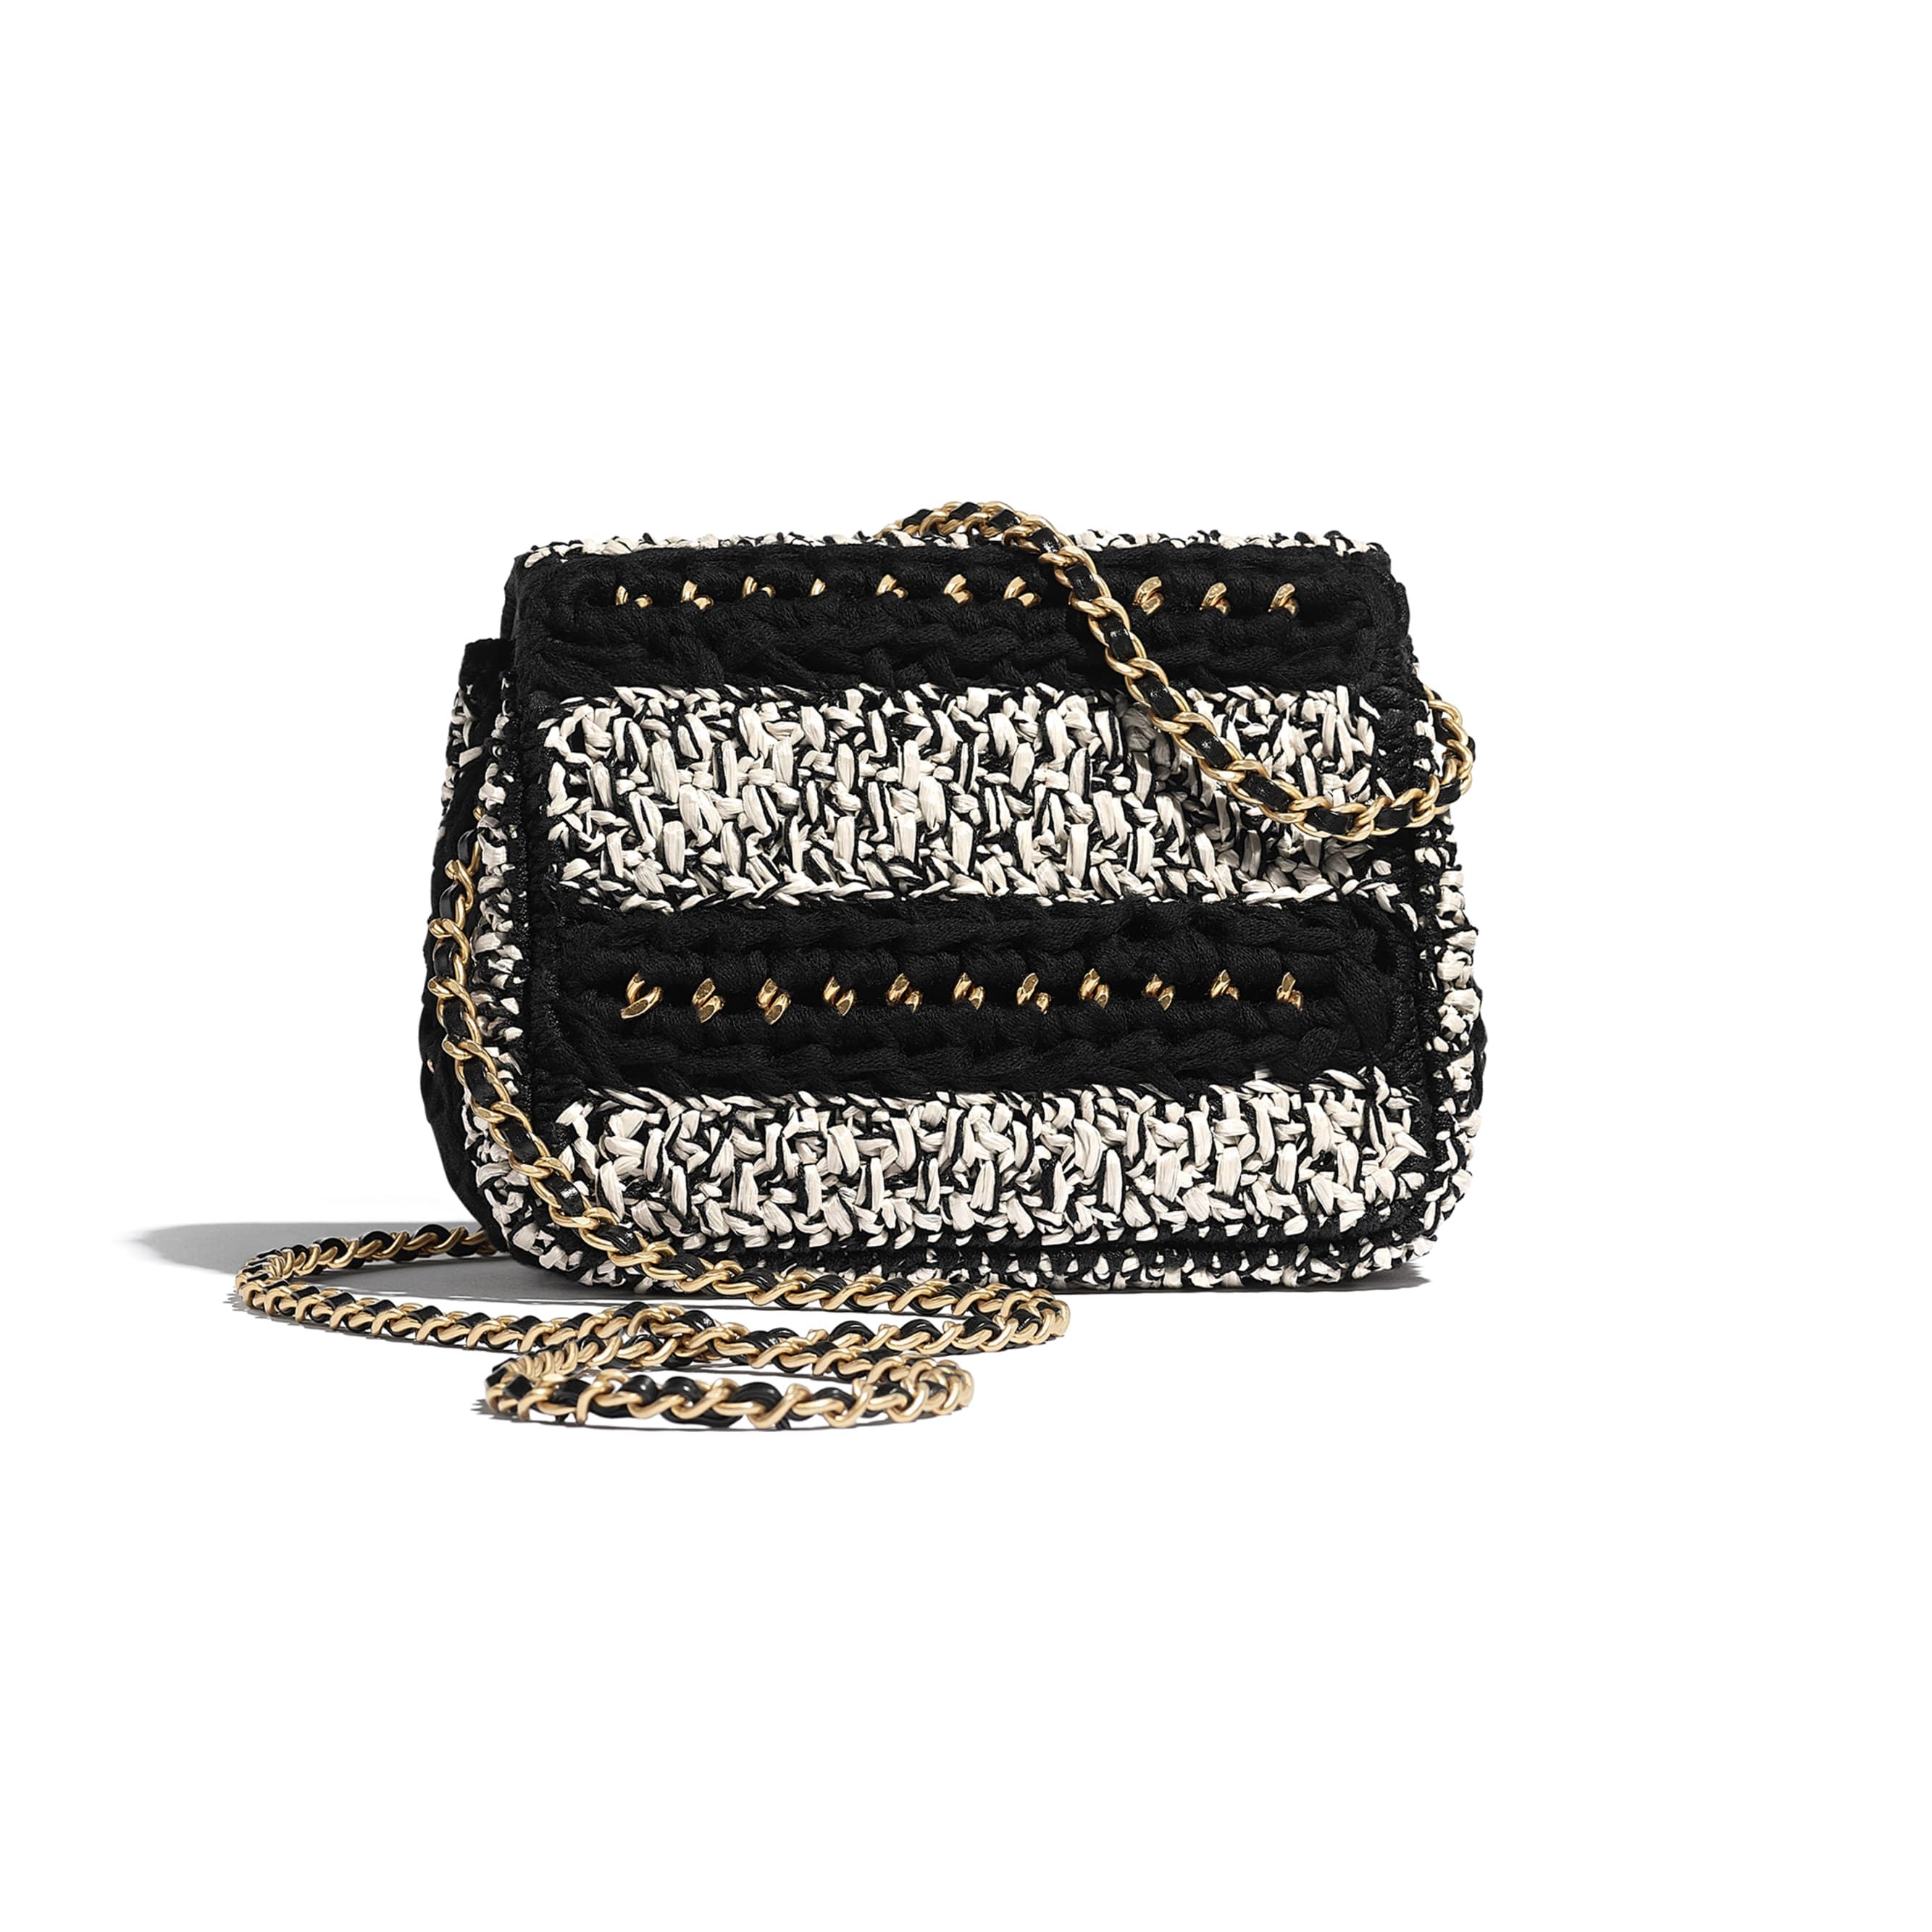 Flap Bag - Black & White - Mixed Fibers, Lambskin & Gold-Tone Metal - Alternative view - see standard sized version